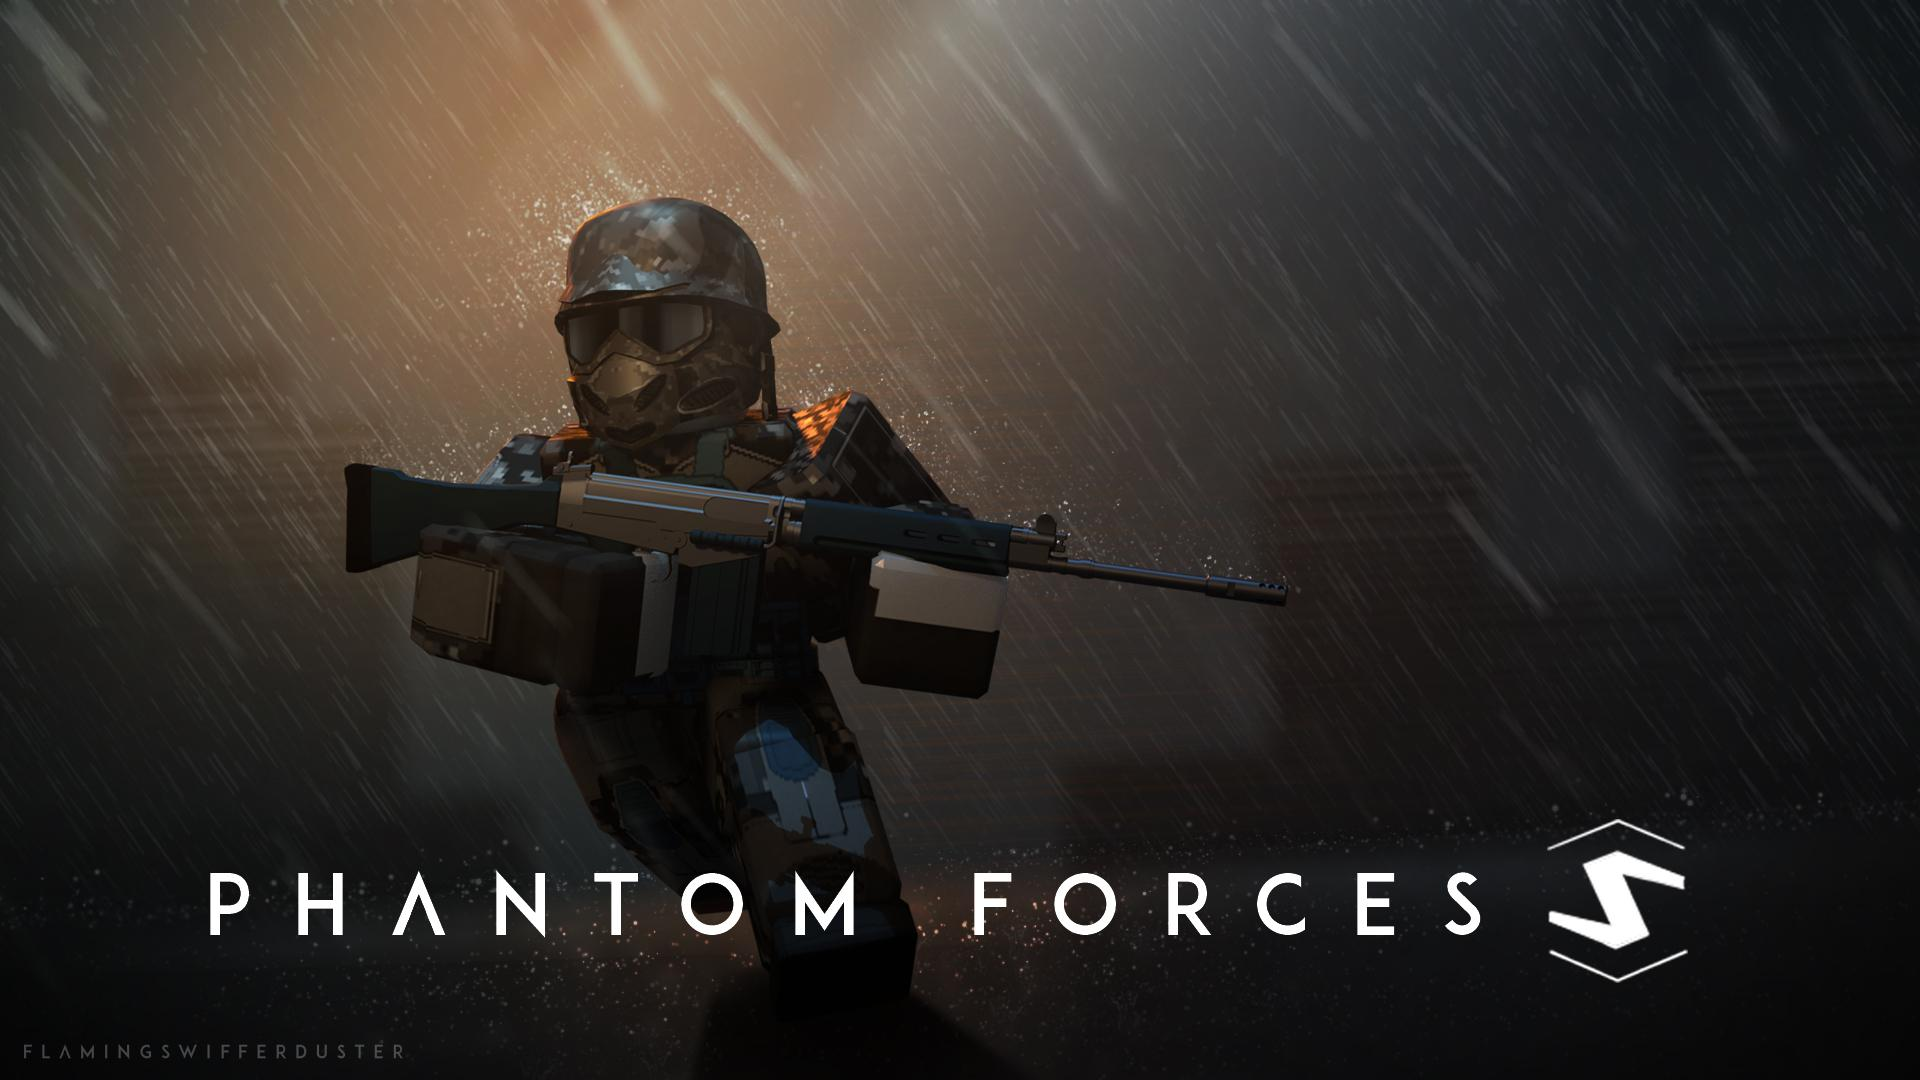 Phantom Forces Wallpapers Top Free Phantom Forces Backgrounds